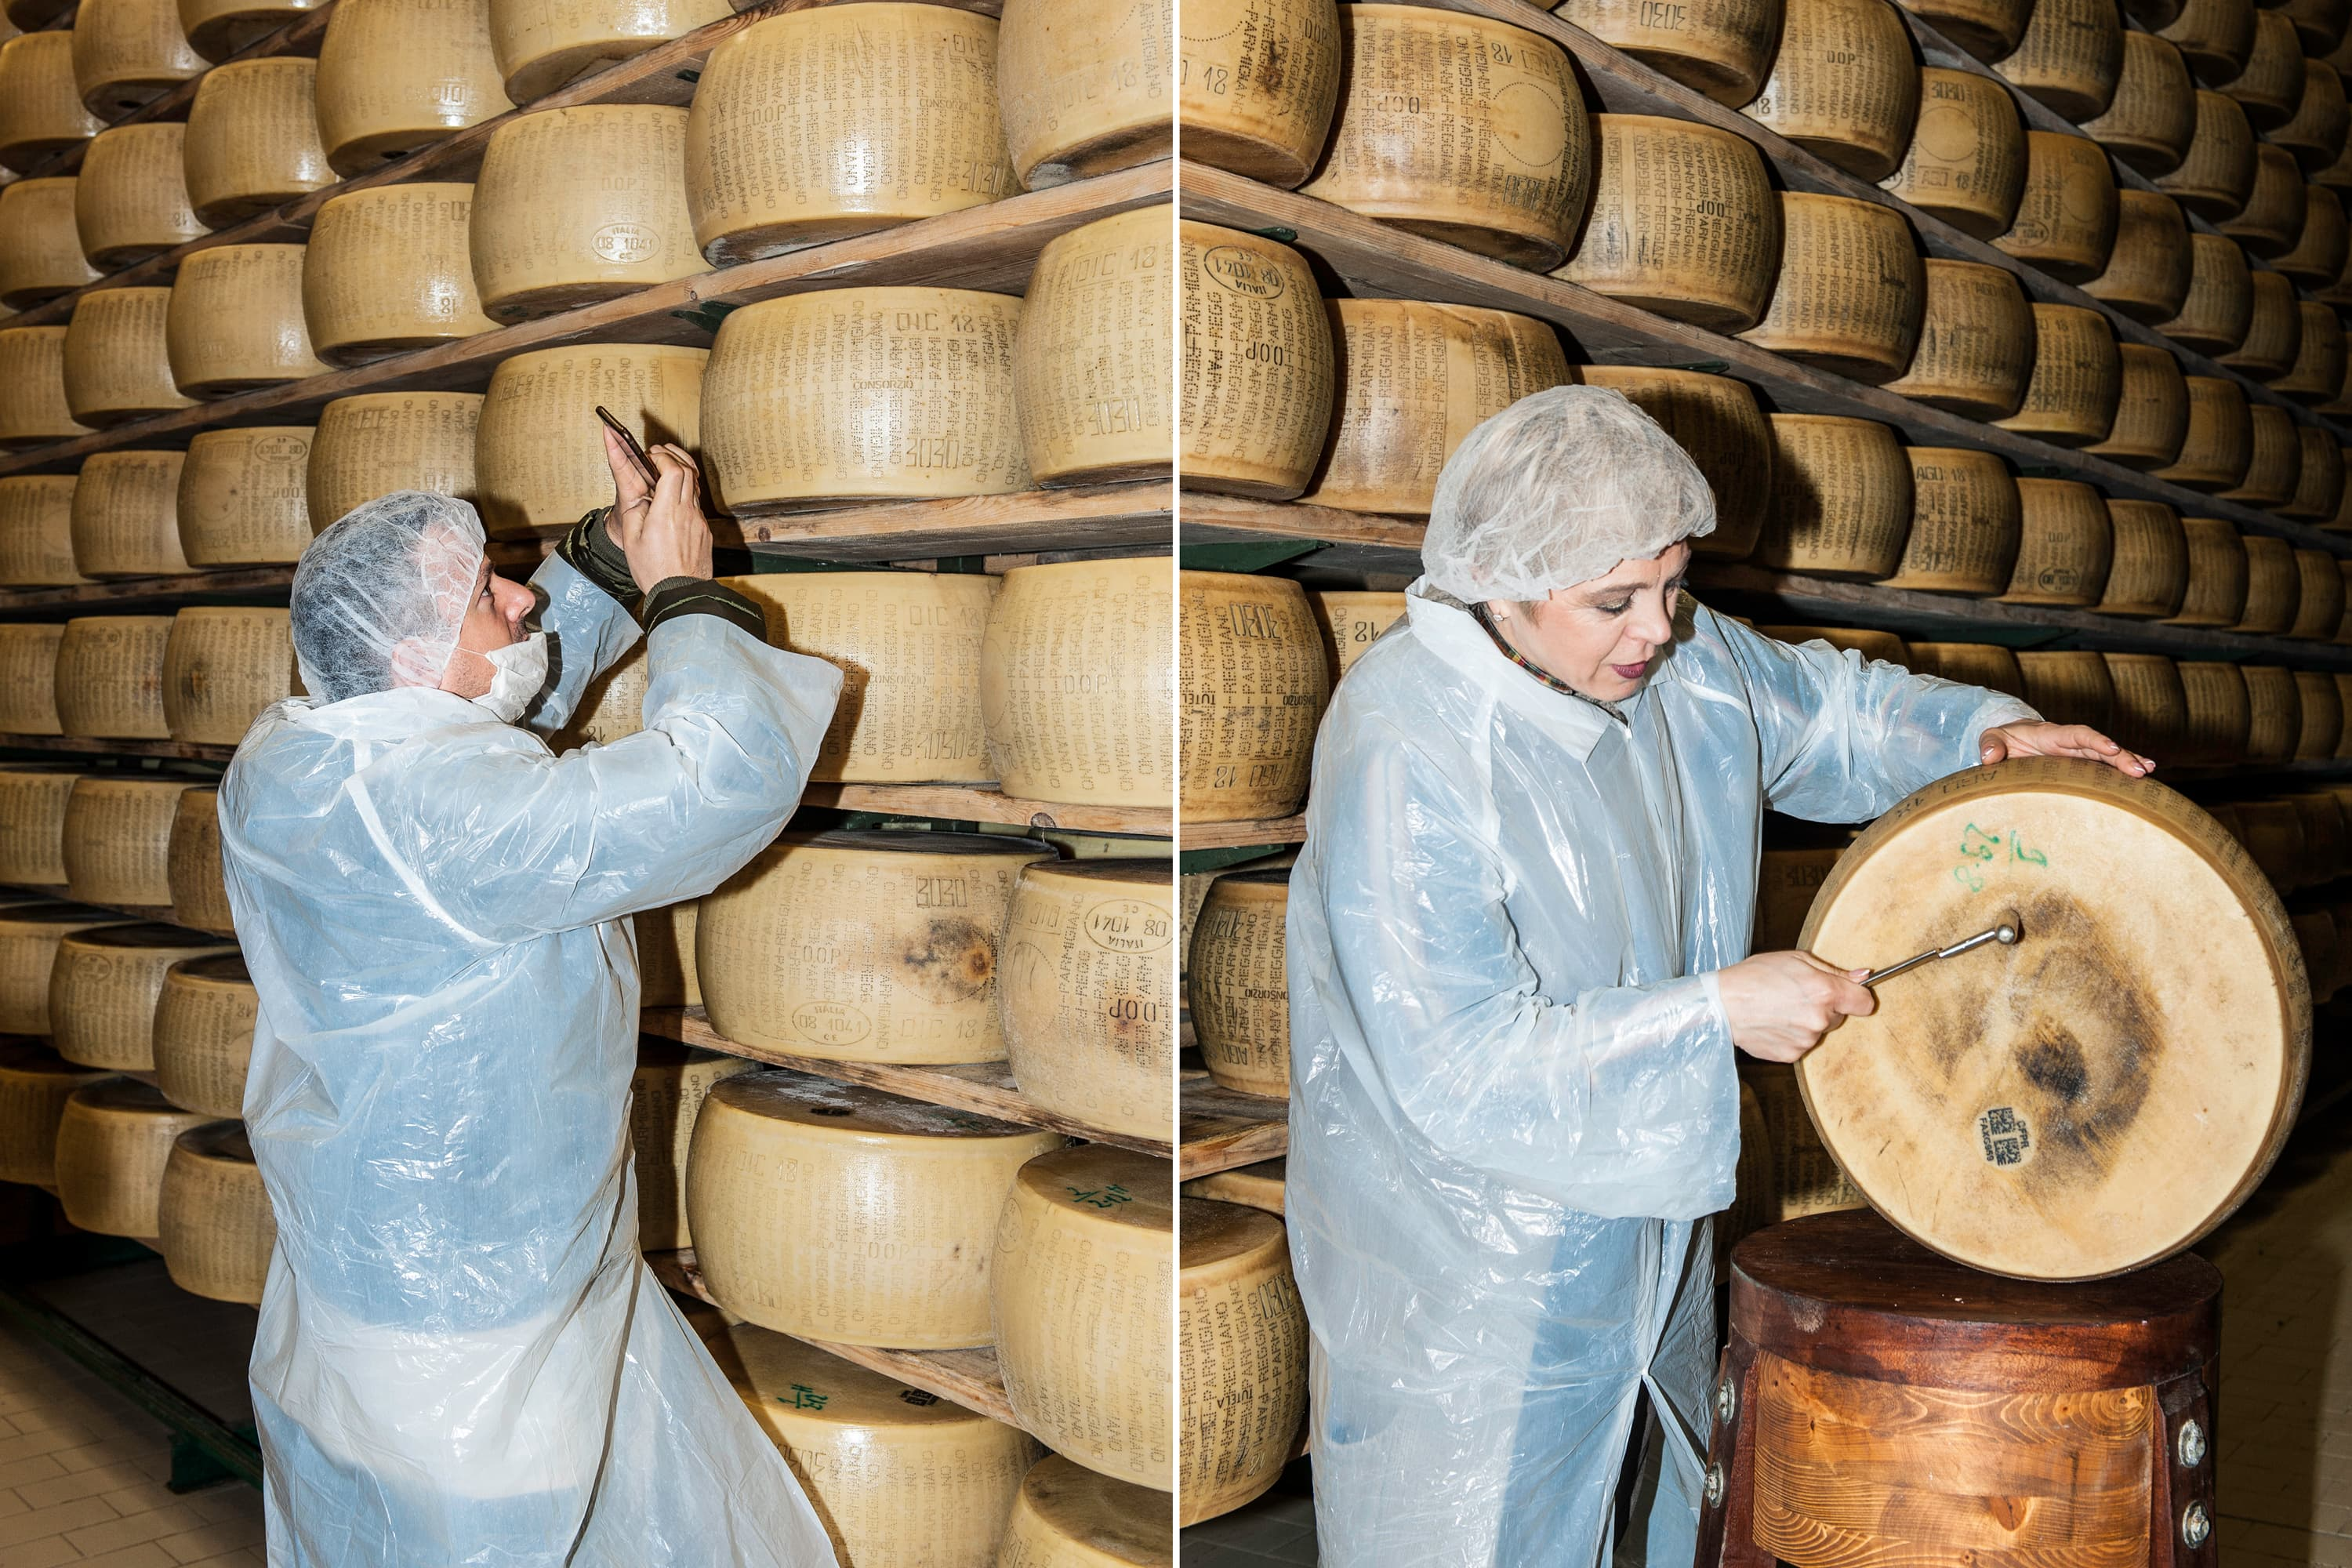 Italian cheese producers brace for higher prices as the country falls victim to EU tariffs